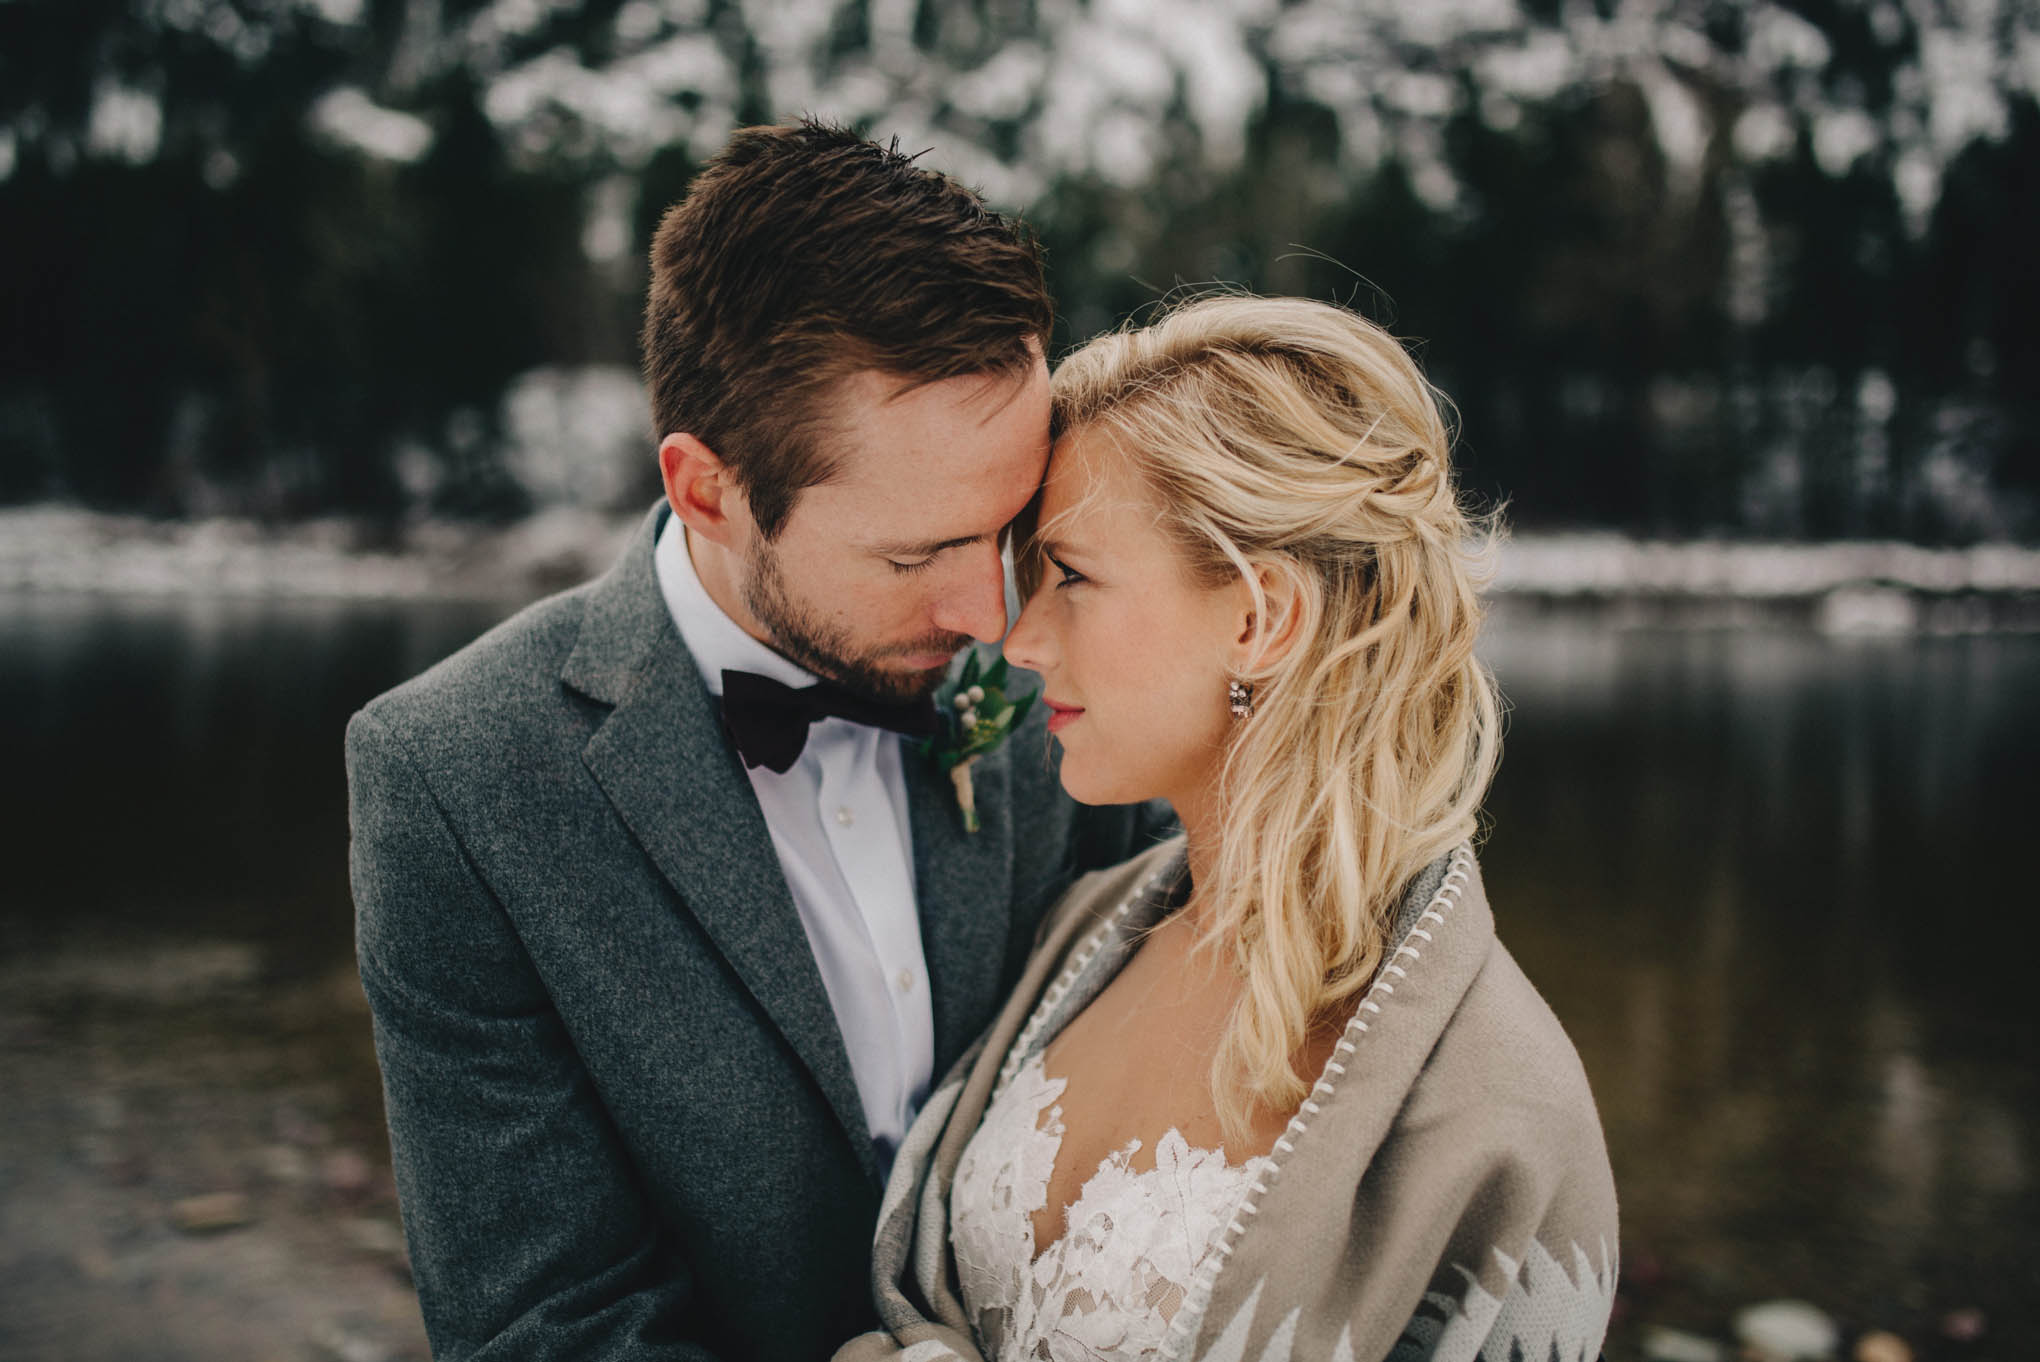 Categories: Weddings-Real Wedding: Jessica & Quinn - Photography by Gabe McClintock